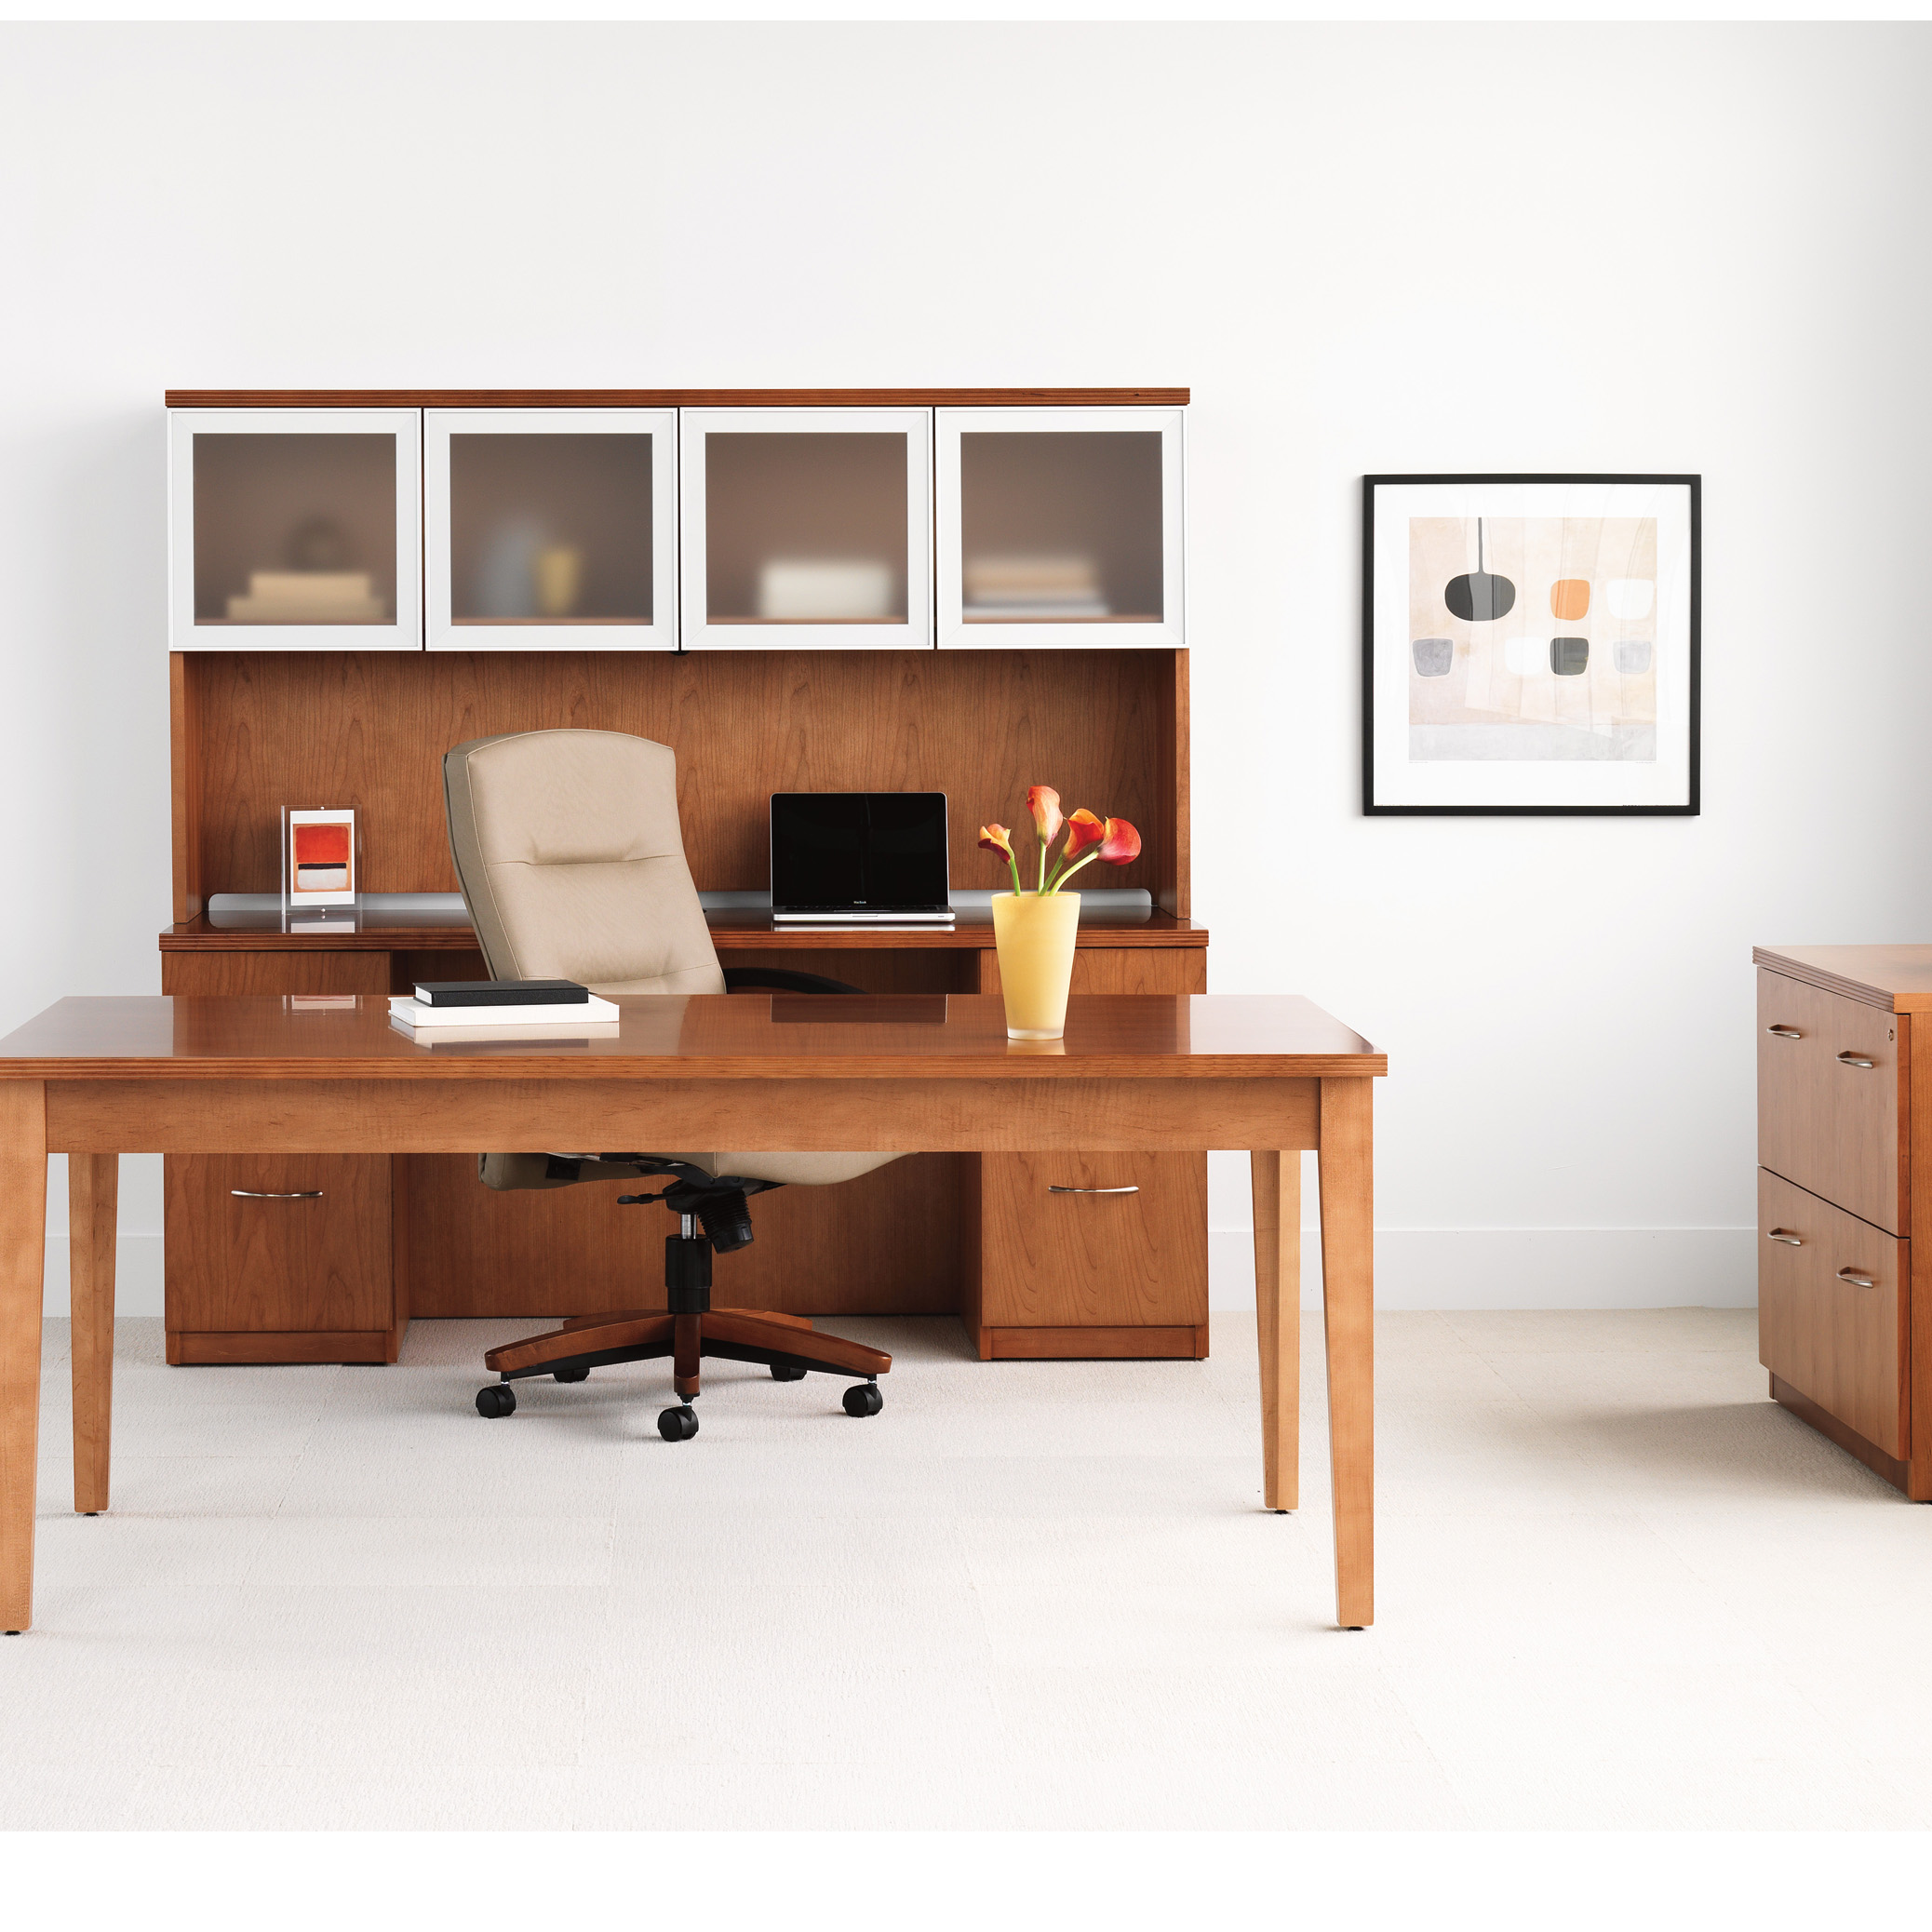 Park Avenue Office Furniture Chicago New Rental Used Desks Cubicles Chairs